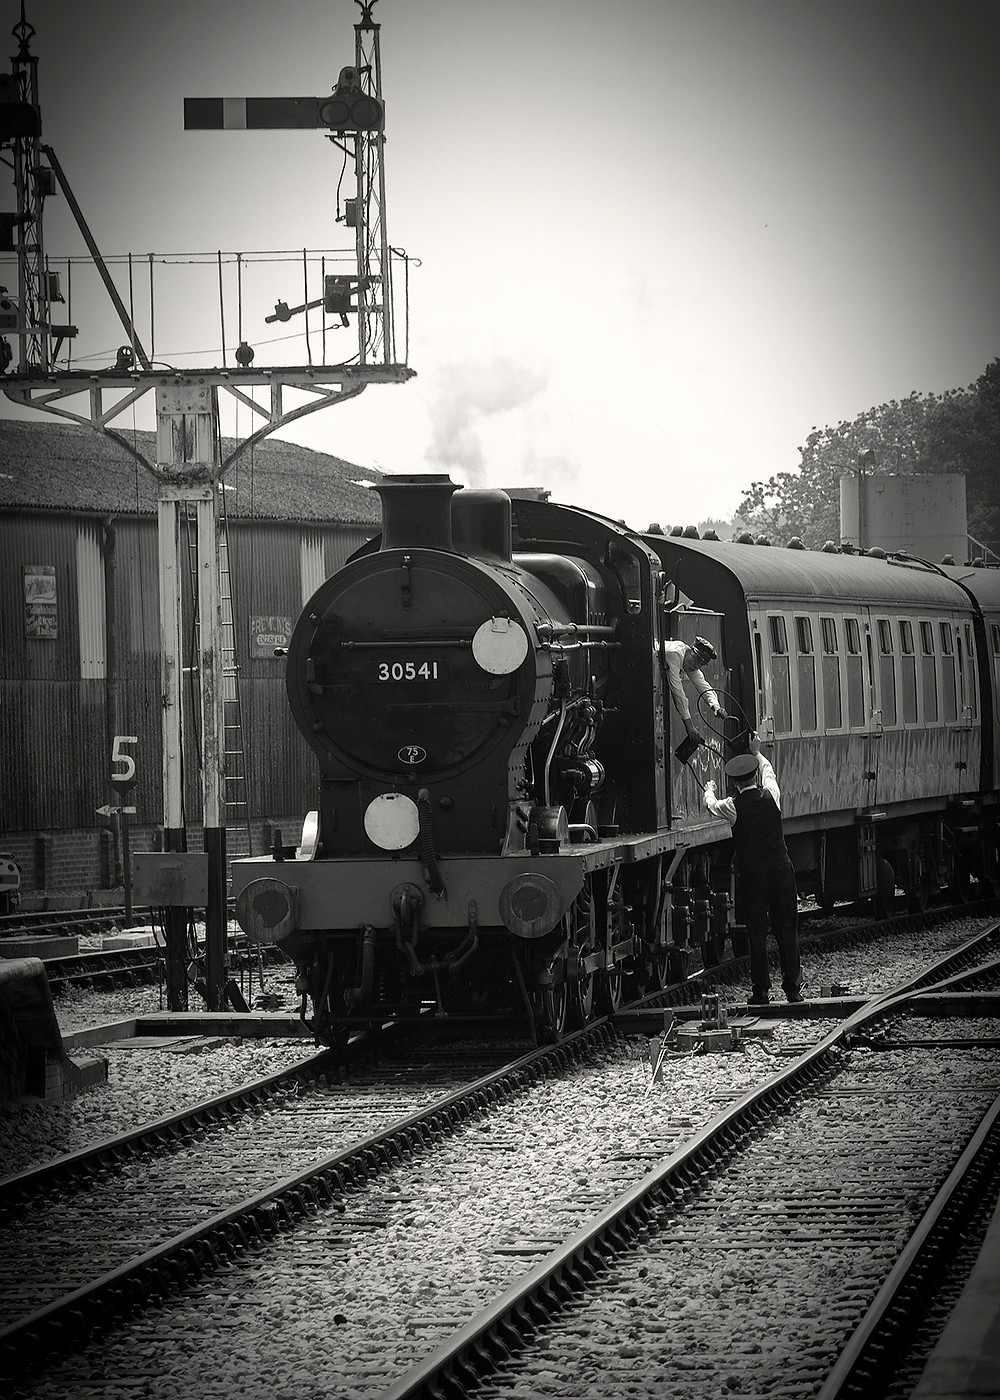 Steam train passing a signal with the driver and signal man exchanging an old fashion safety device